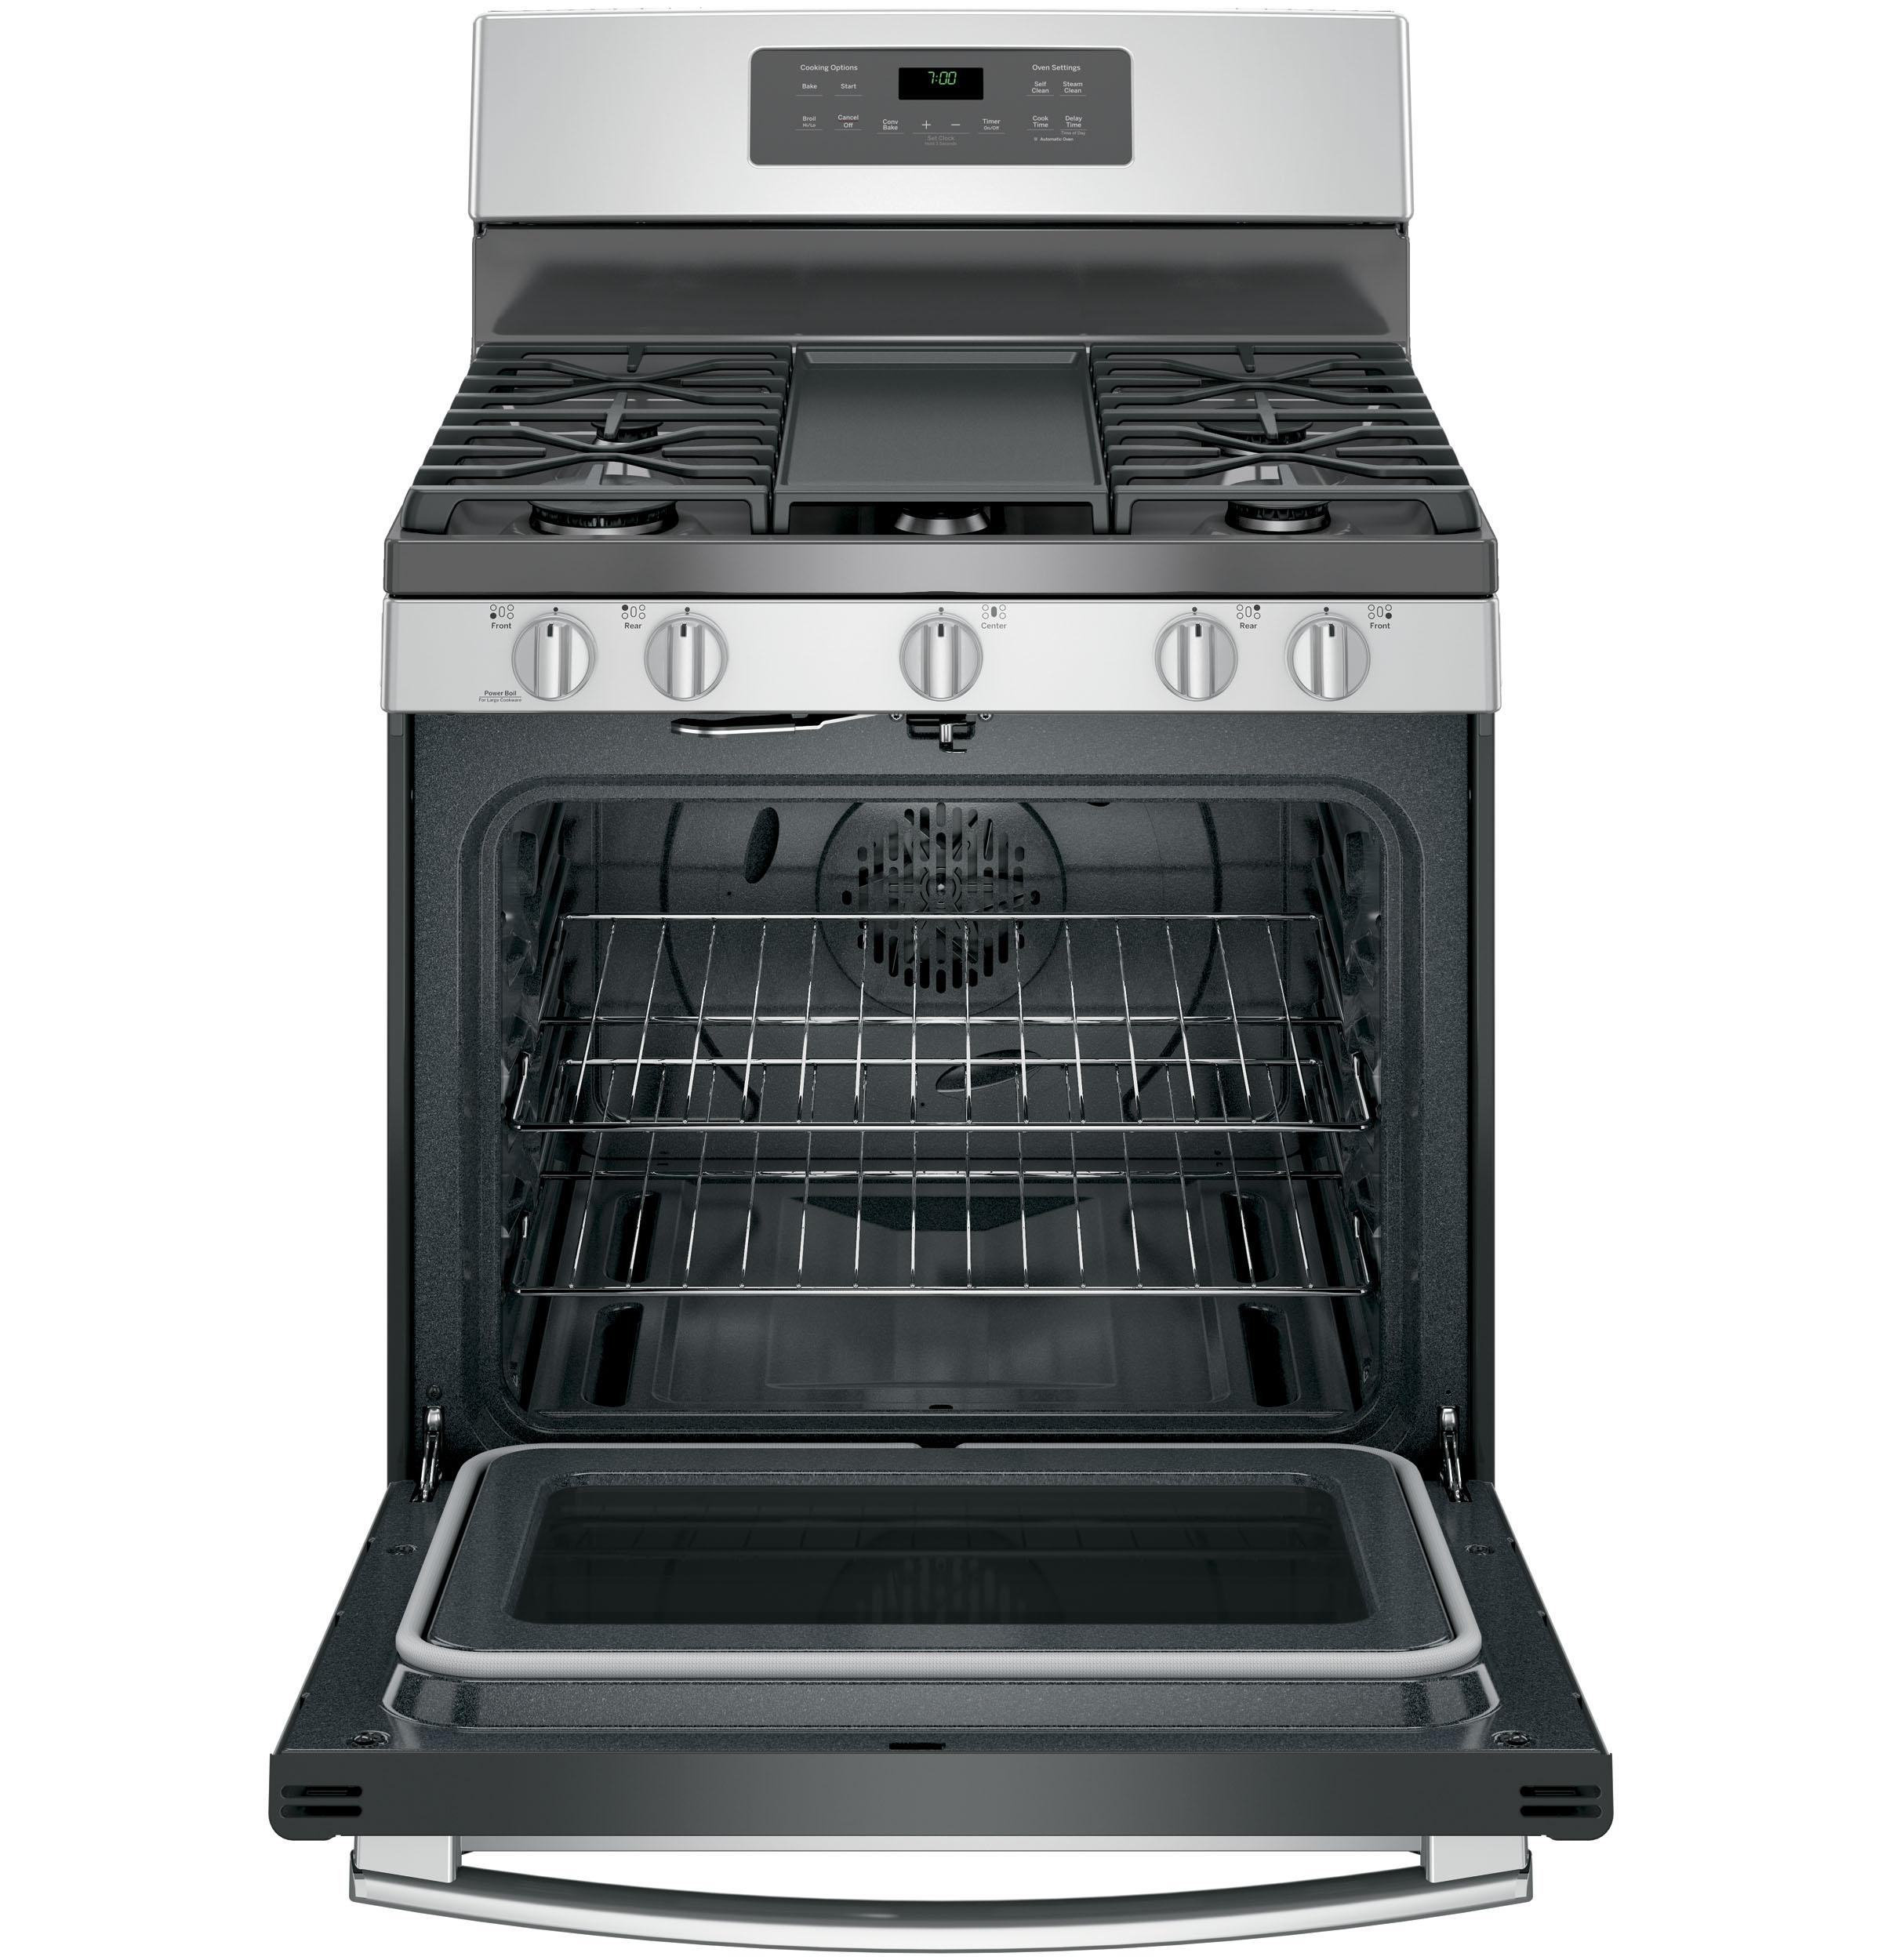 Jgb700 General Electric Jgb700 Gas Ranges